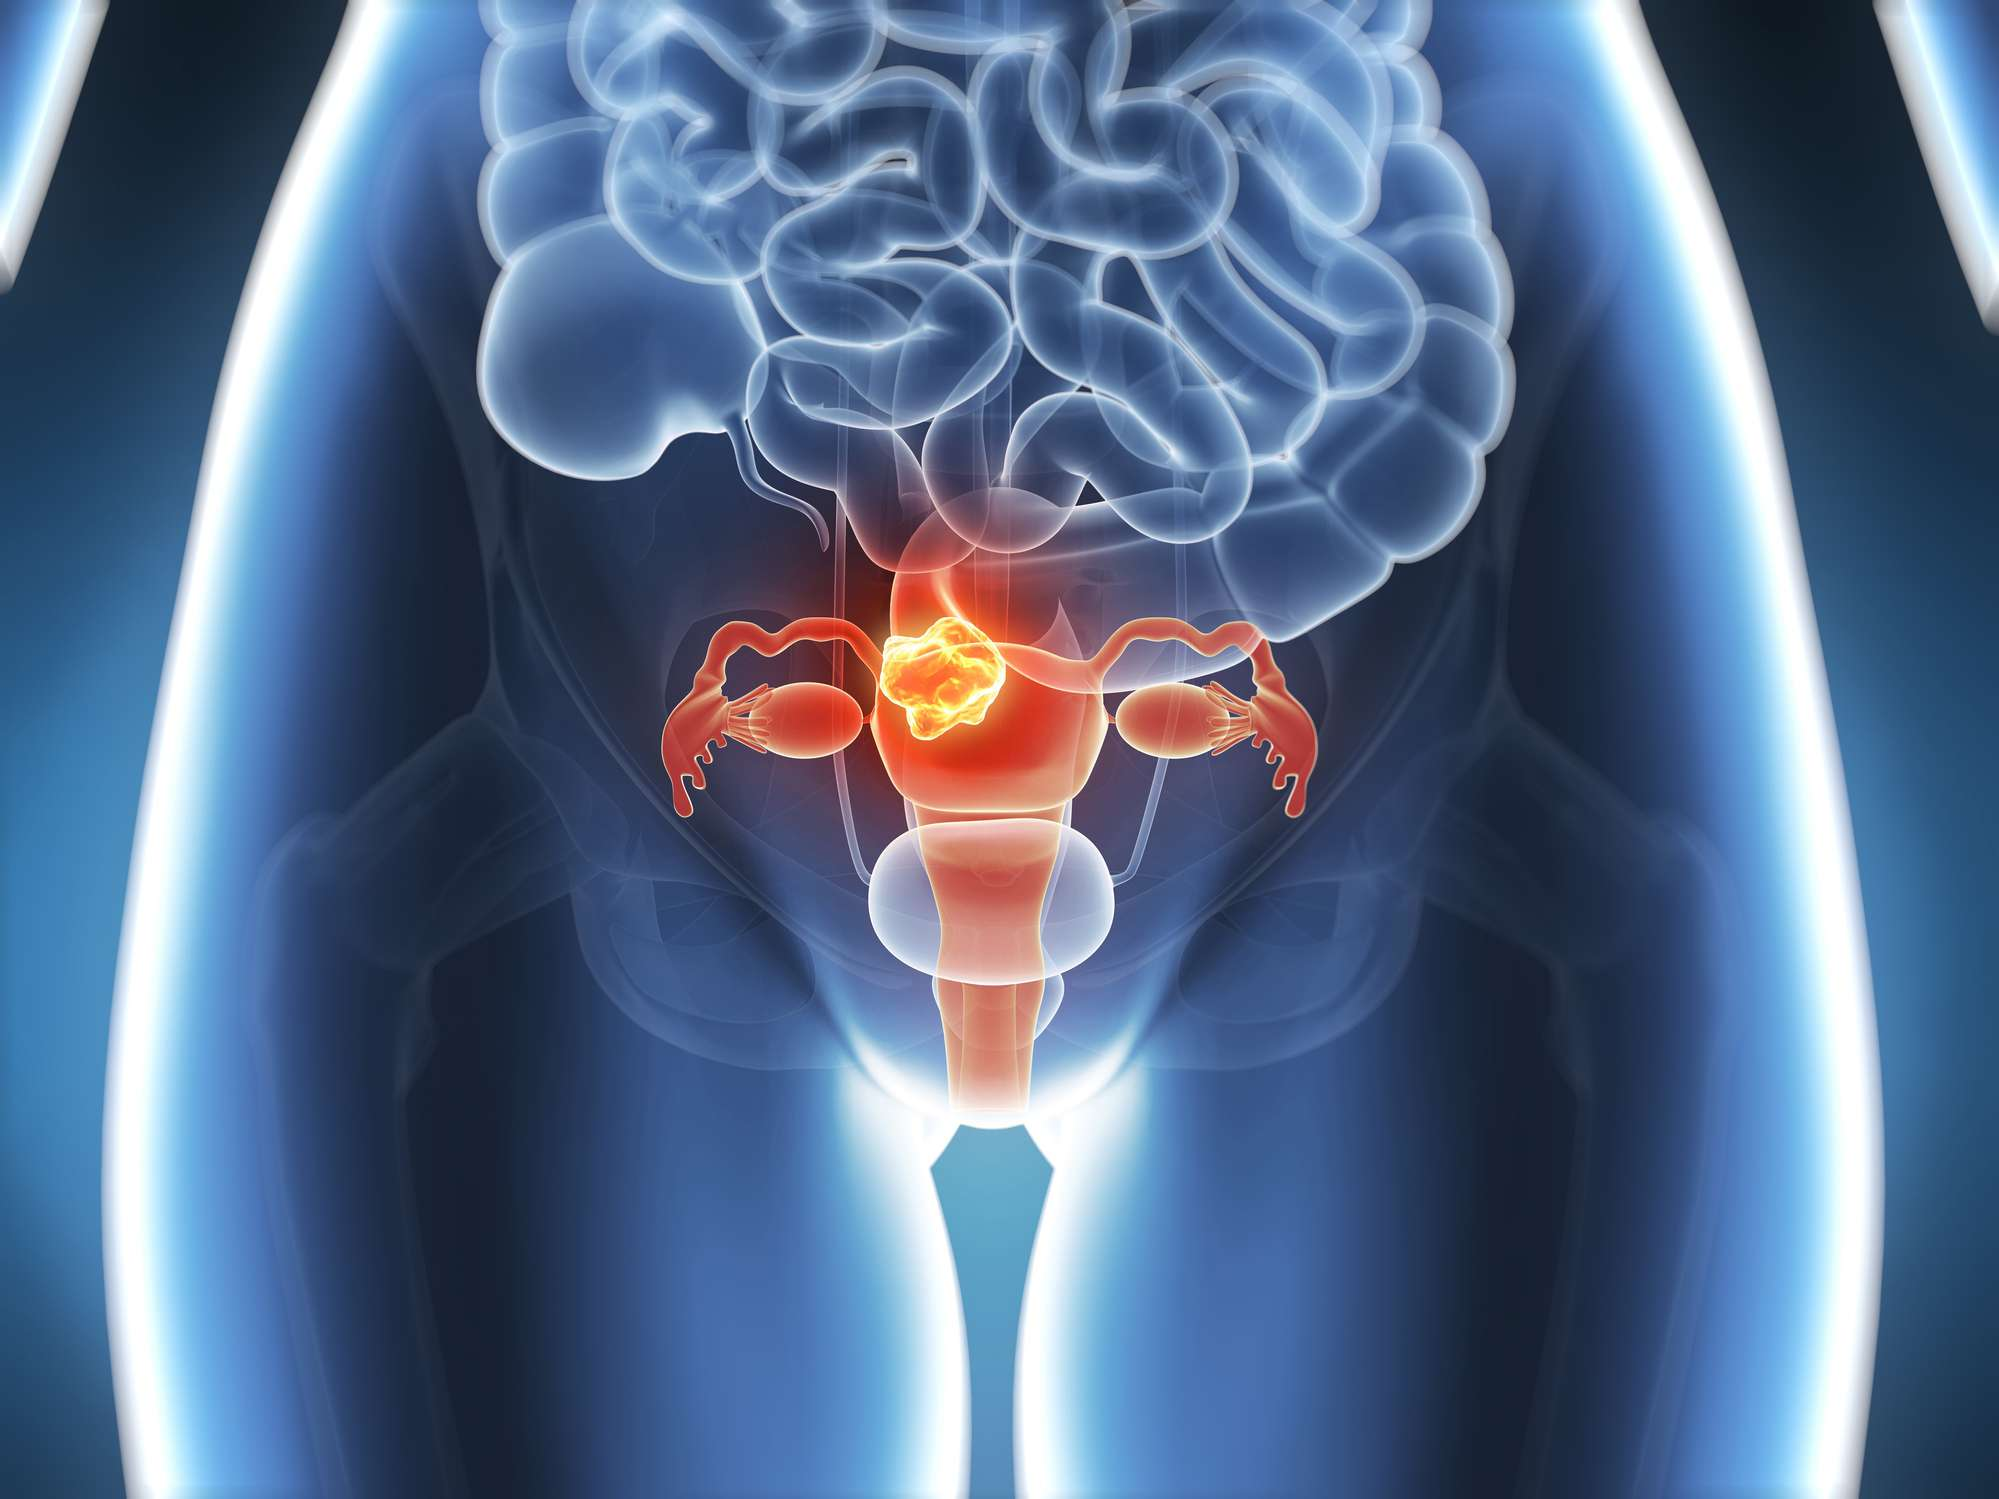 Graphical representation of X-ray vision of the female reproductive system.